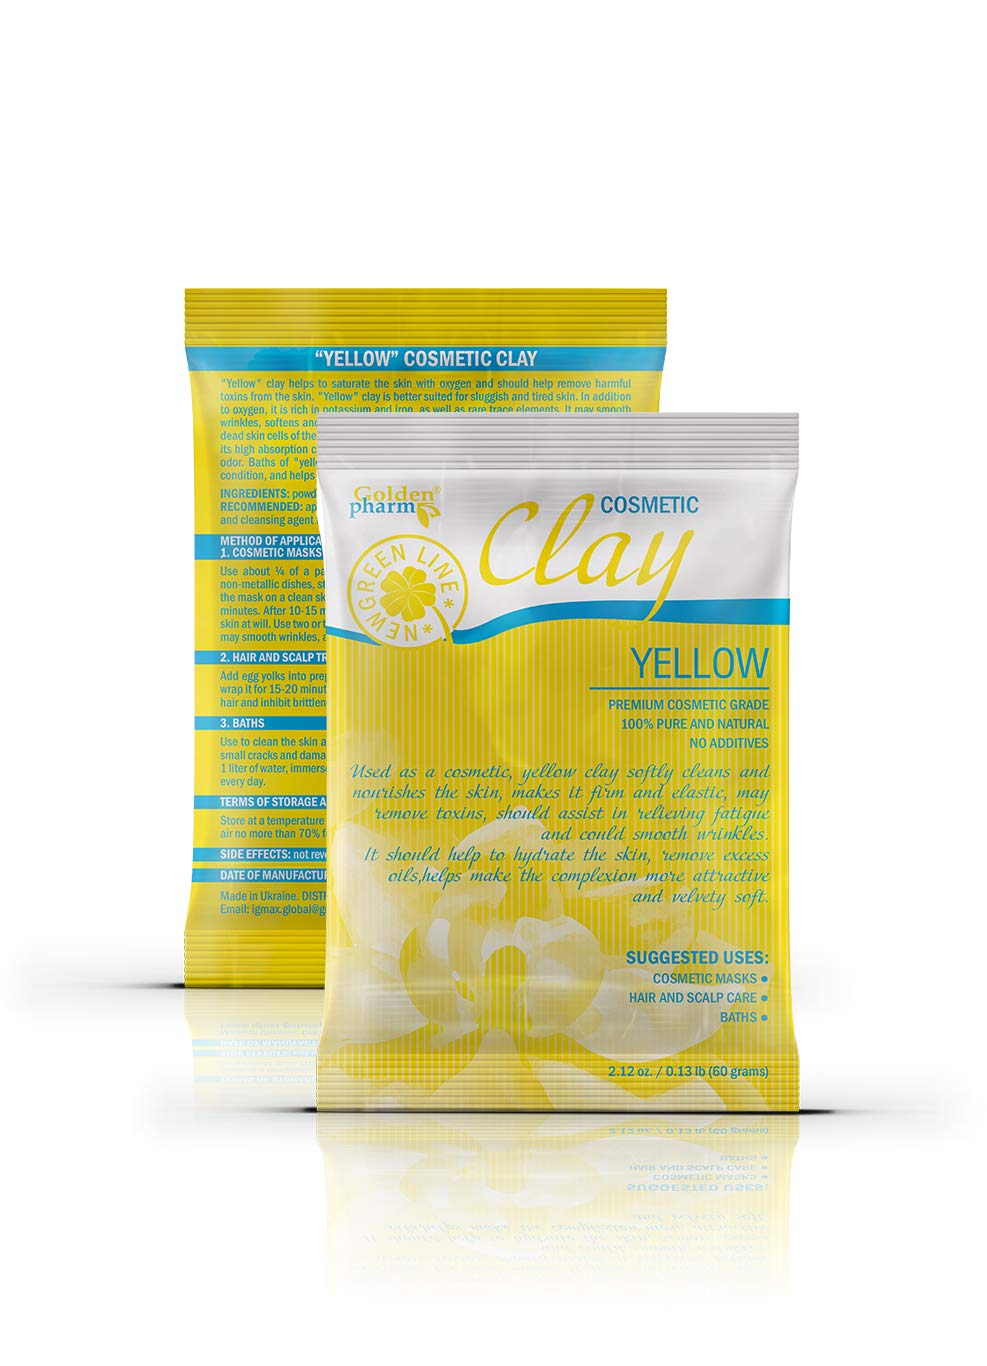 White Kaolin Clay Powder for Face and Body with Natural Additives (4 pack, yellow (with pumpkin))